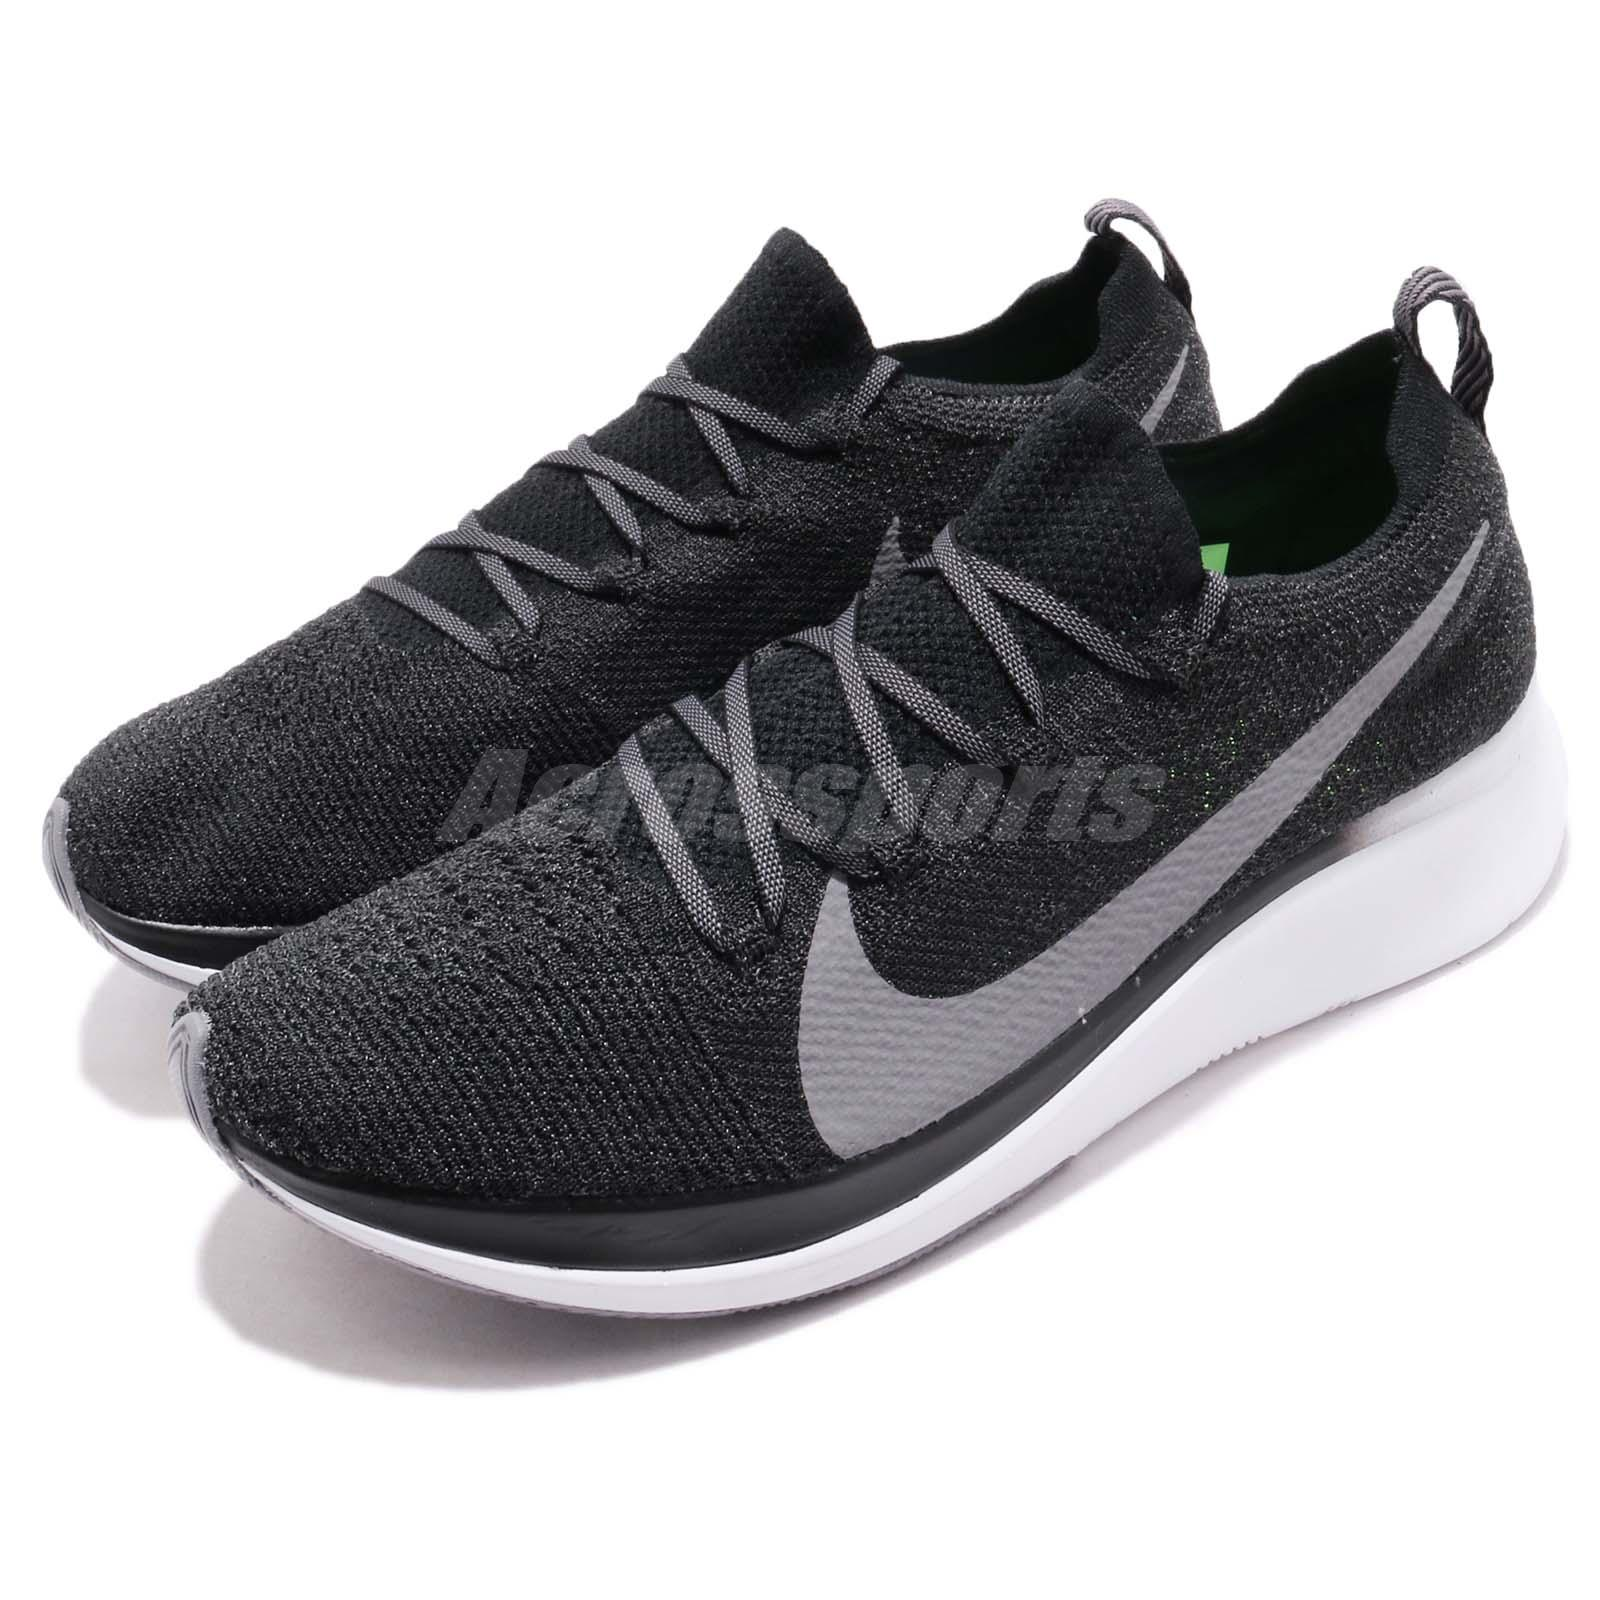 cheap for discount e47e2 c6f44 Details about Nike Zoom Fly FK Flyknit Black Grey White Men Running Shoes  Sneakers AR4561-001